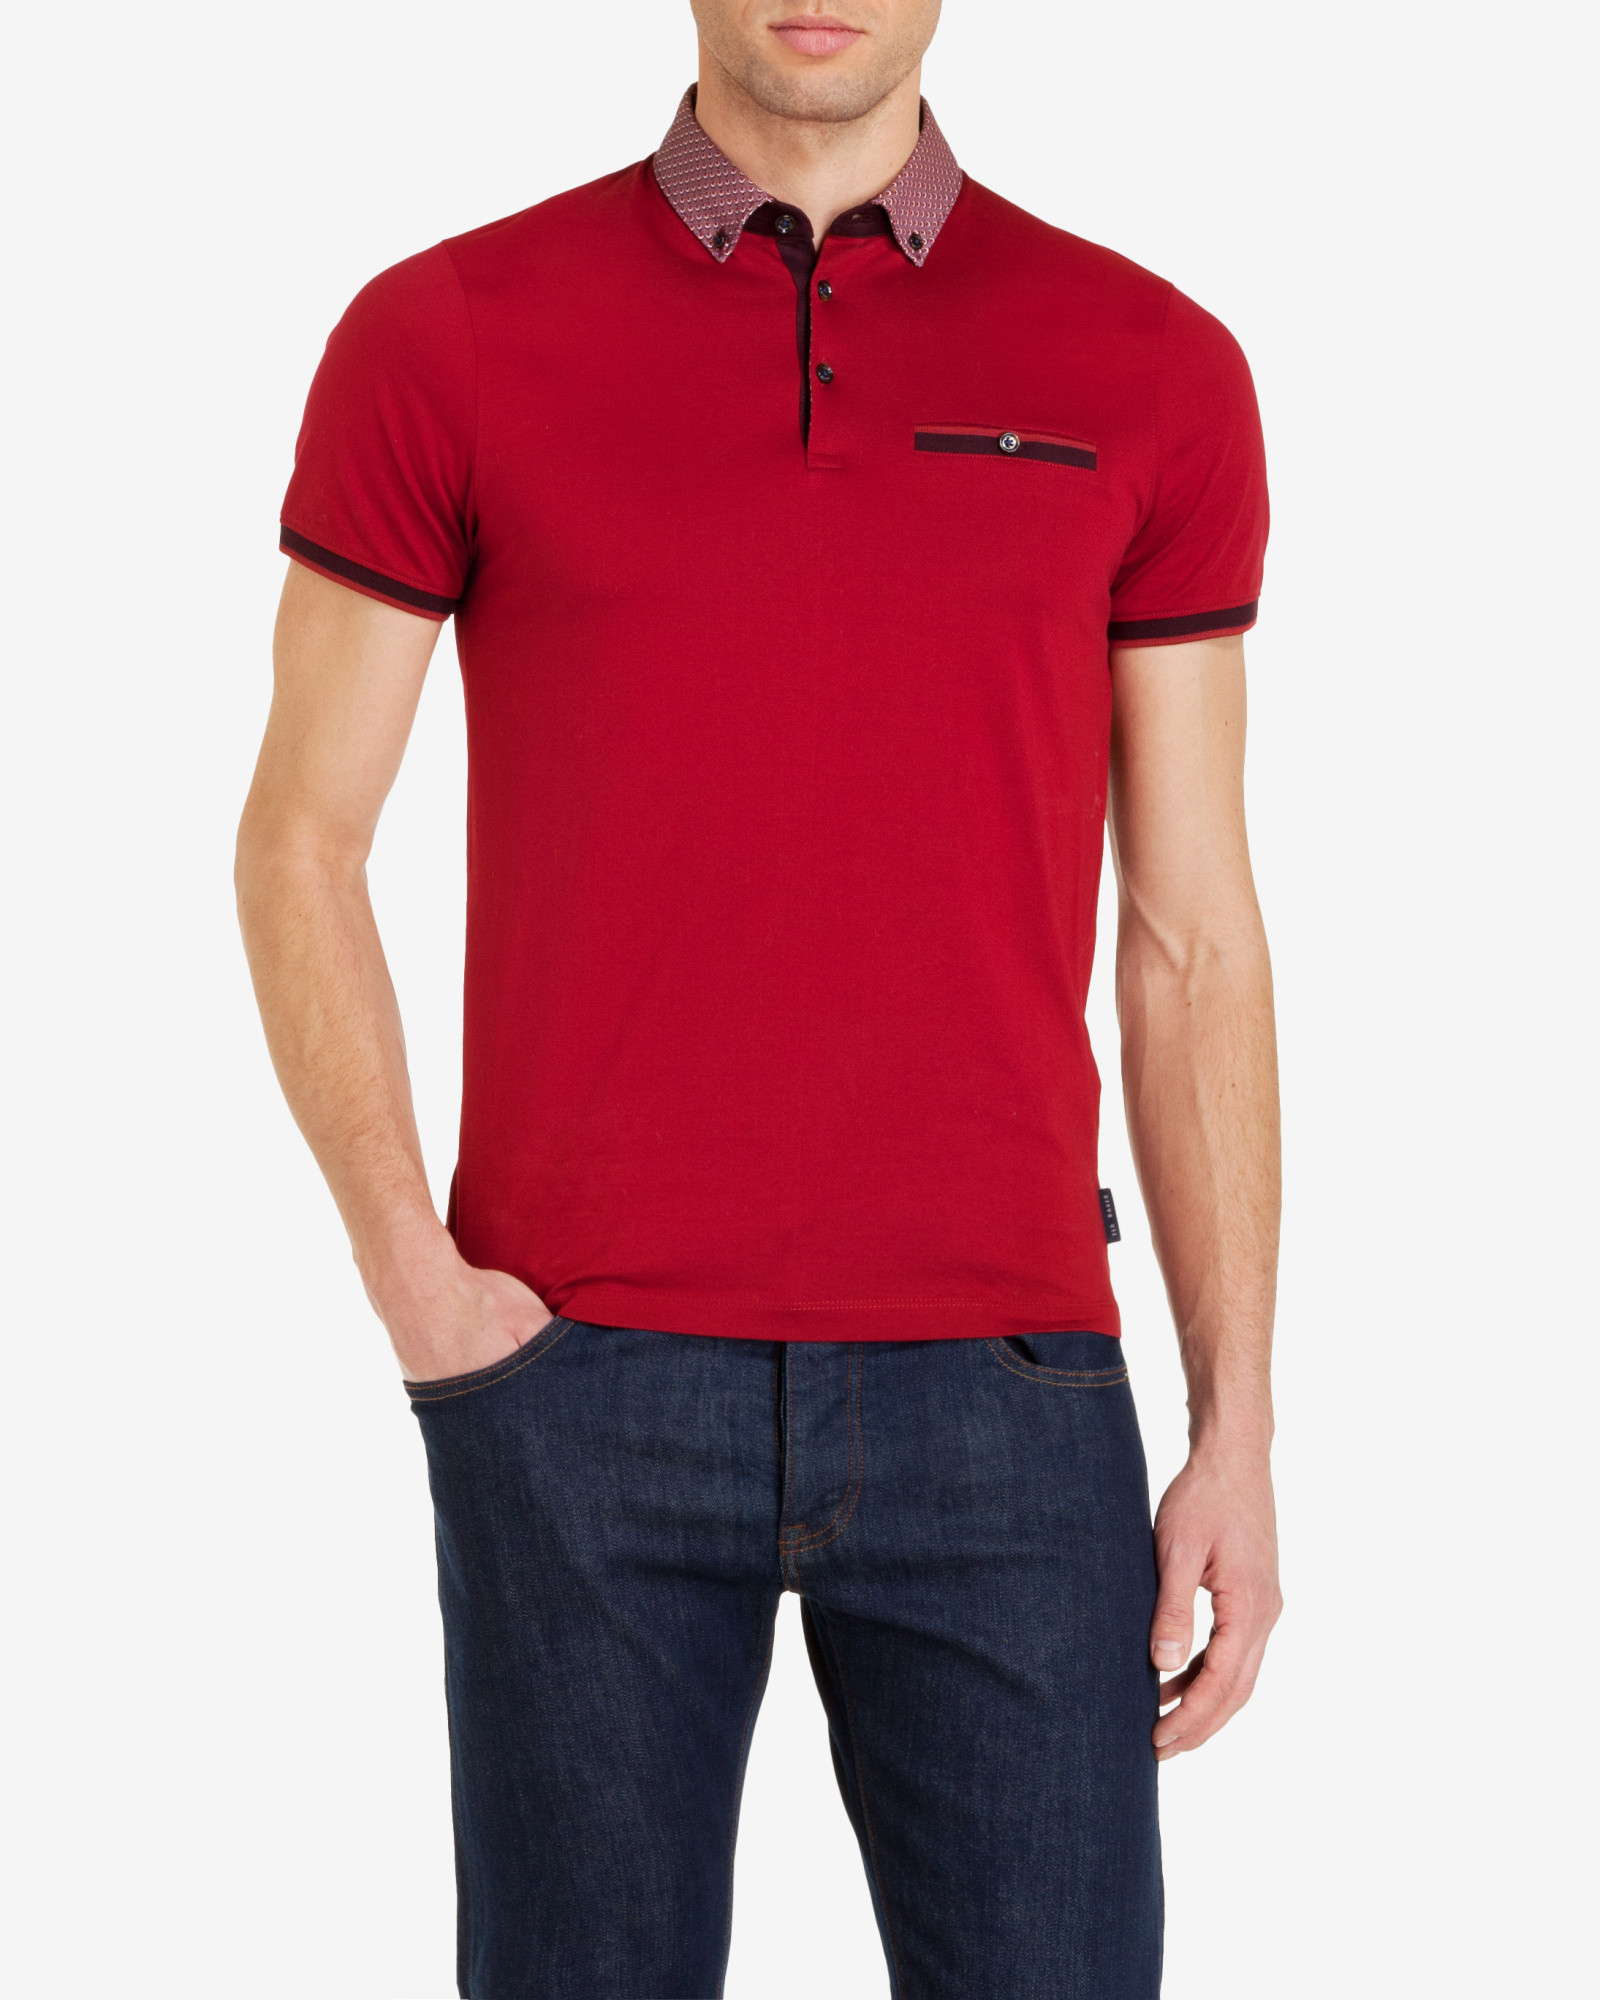 2d66dbb7c229c Lyst - Ted Baker Printed Collar Polo Shirt in Red for Men